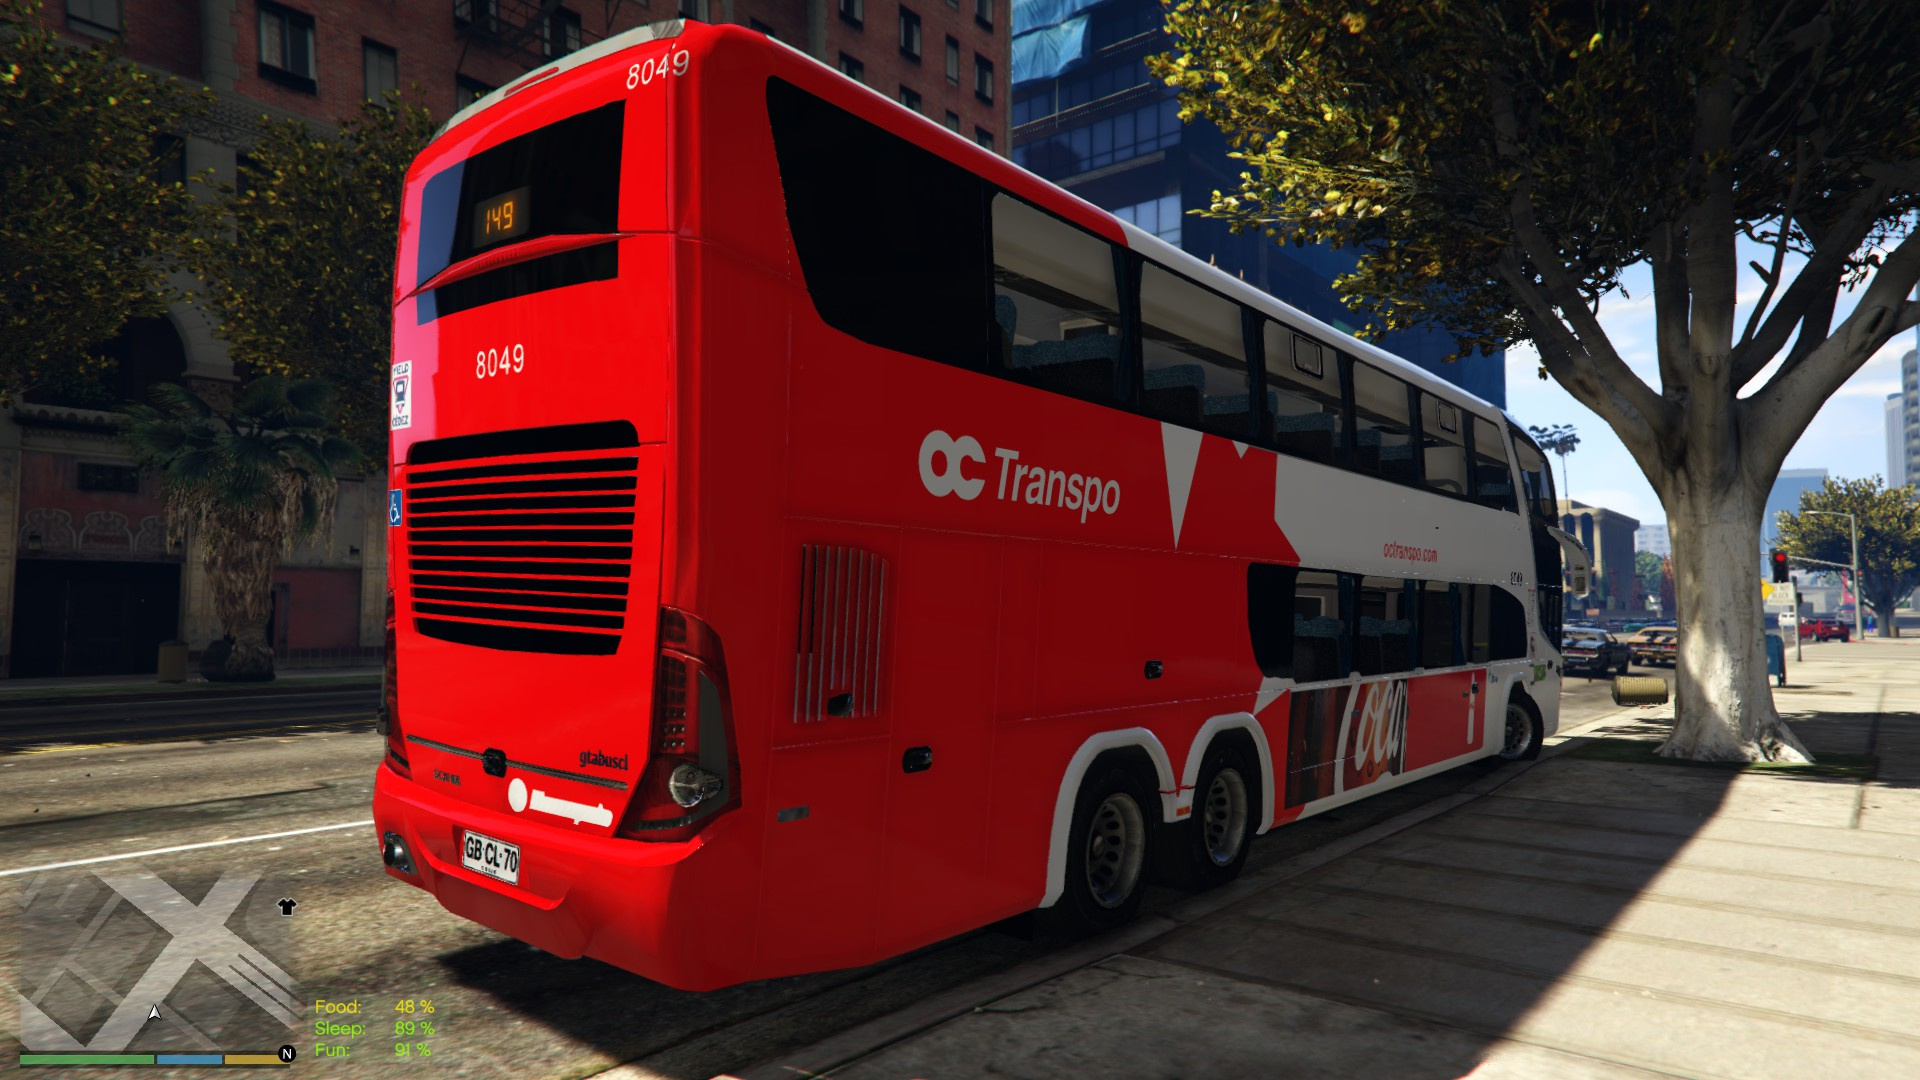 Oc Transpo Double Decker Bus Gta5 Mods Com